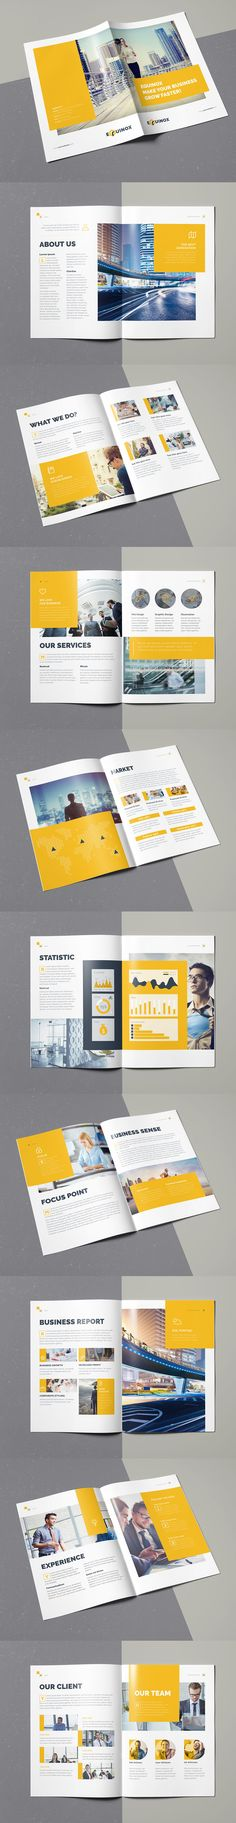 Get an attractive brochure design within 24 hours: - Fiverr - an online platform for freelancer. Fiverr is also a great place for you to outsource tasks such as writing making a vide creating a logo. - Get an attractive brochure design within 24 hours: Graphic Design Brochure, Brochure Layout, Freelance Graphic Design, Graphic Design Projects, Brochure Template, Business Branding, Corporate Brochure Design, Logo Branding, Leaflet Design